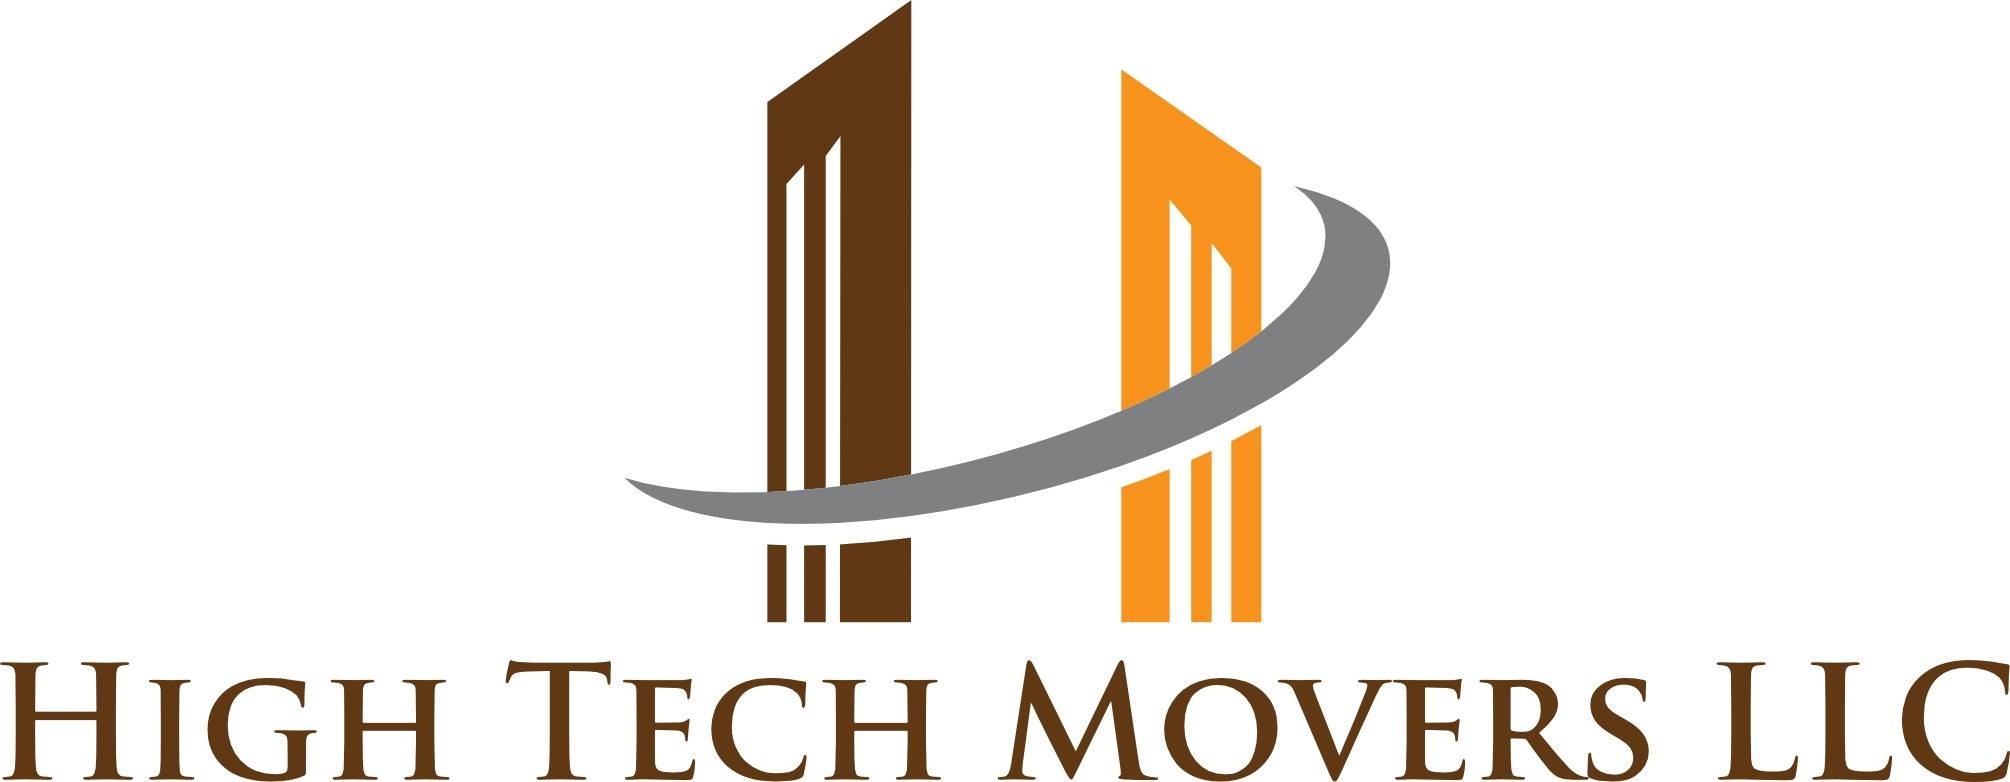 High Tech Movers LLc